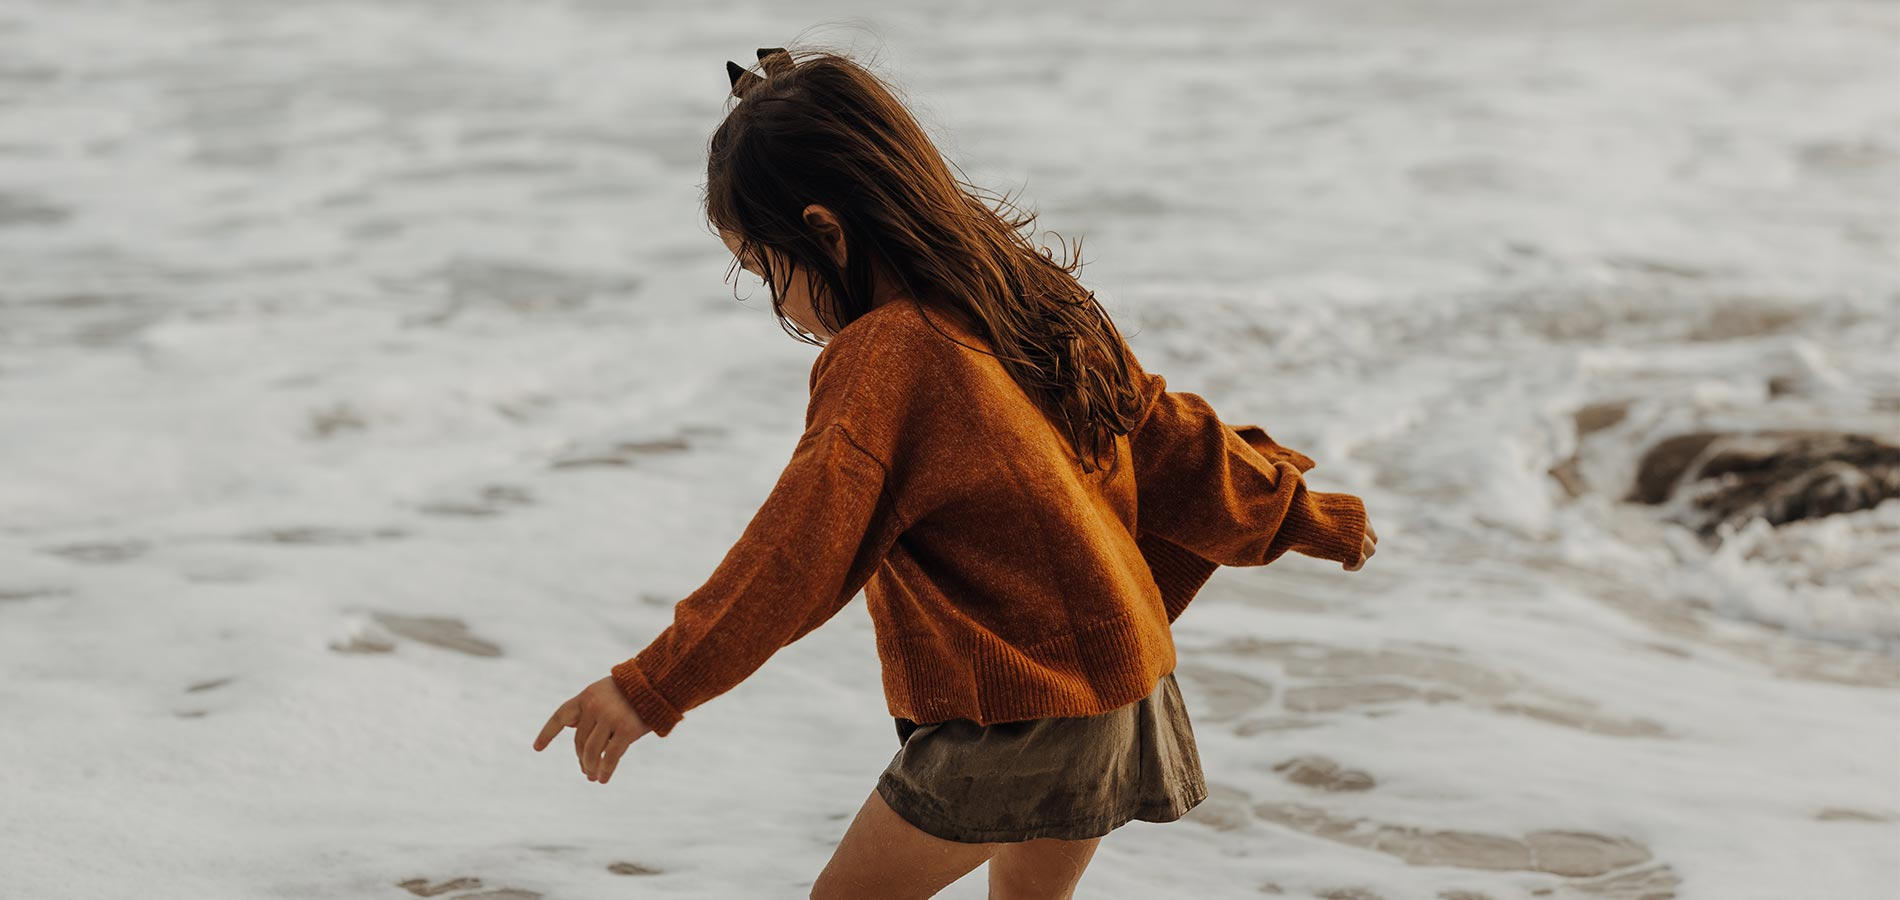 Photo by @cjmunizphotography of little girl playing on the beach